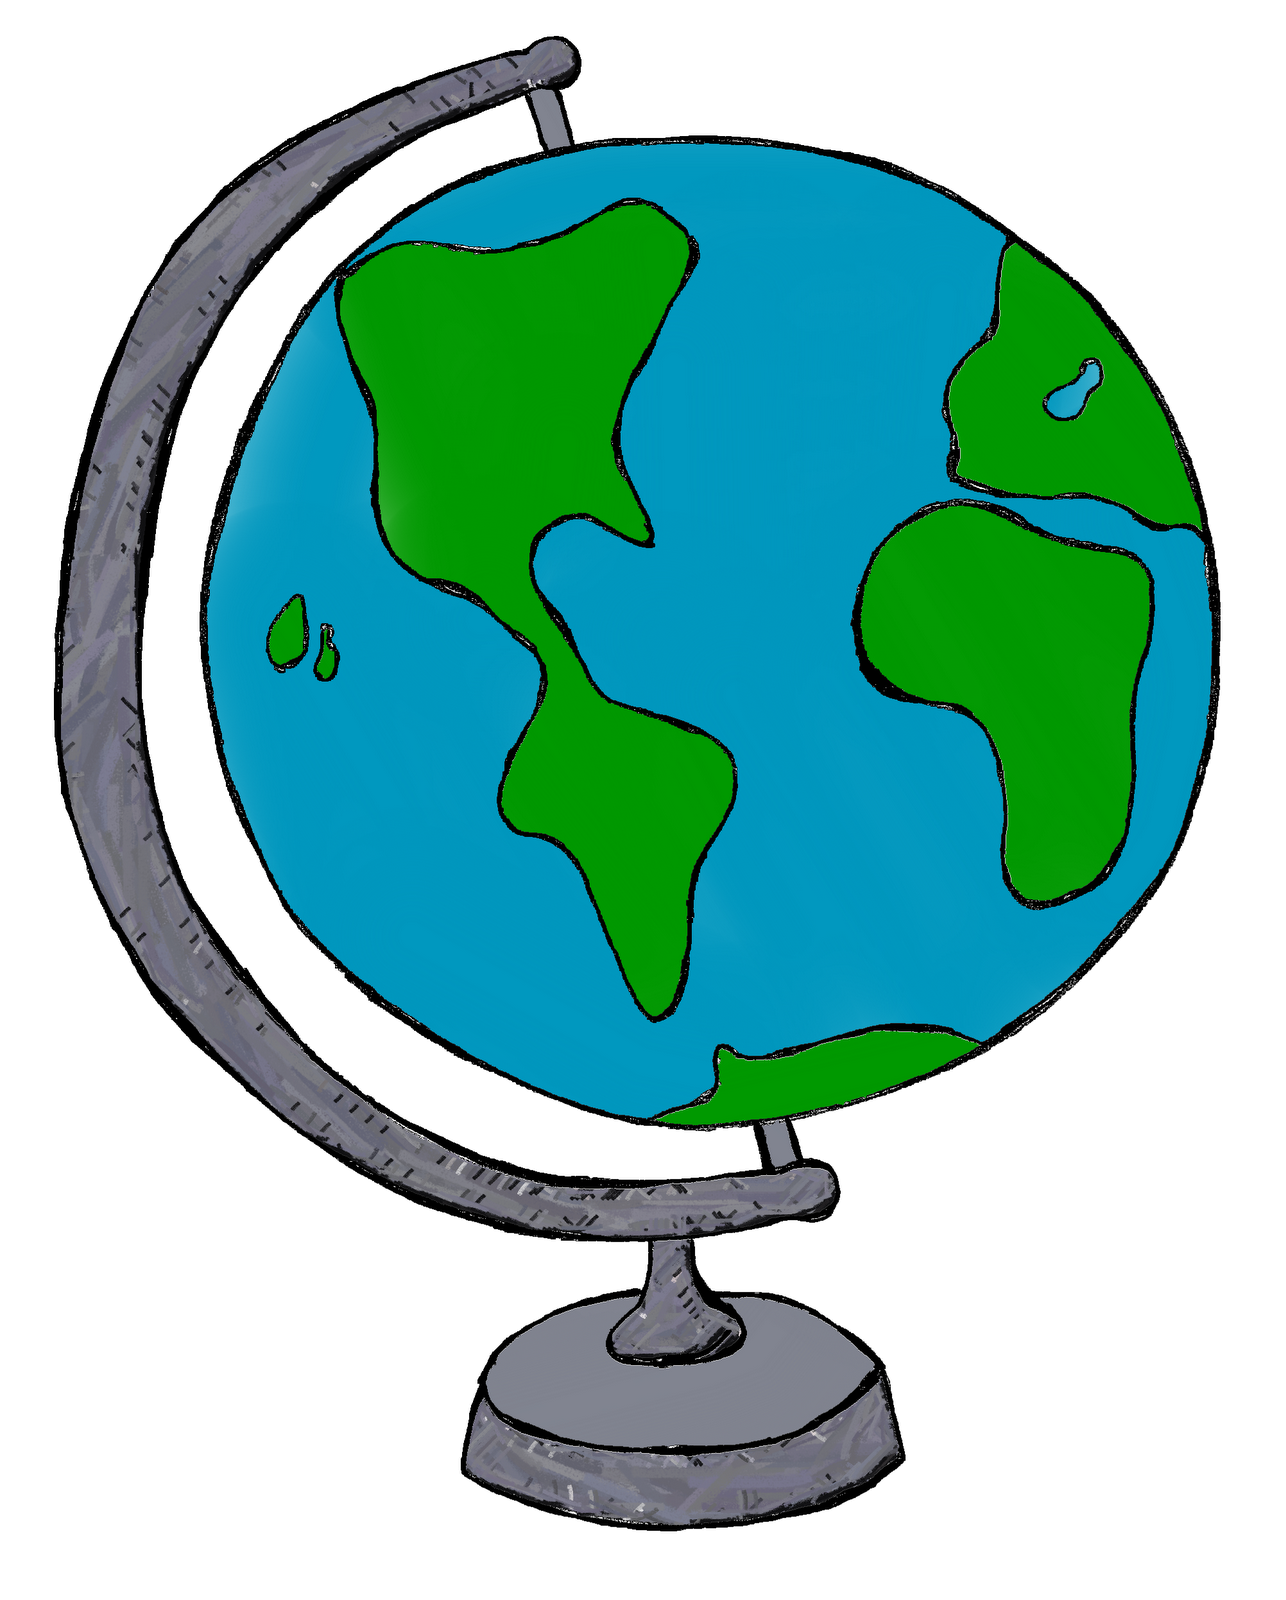 1286x1600 Earth globe clip art free clipart images 3